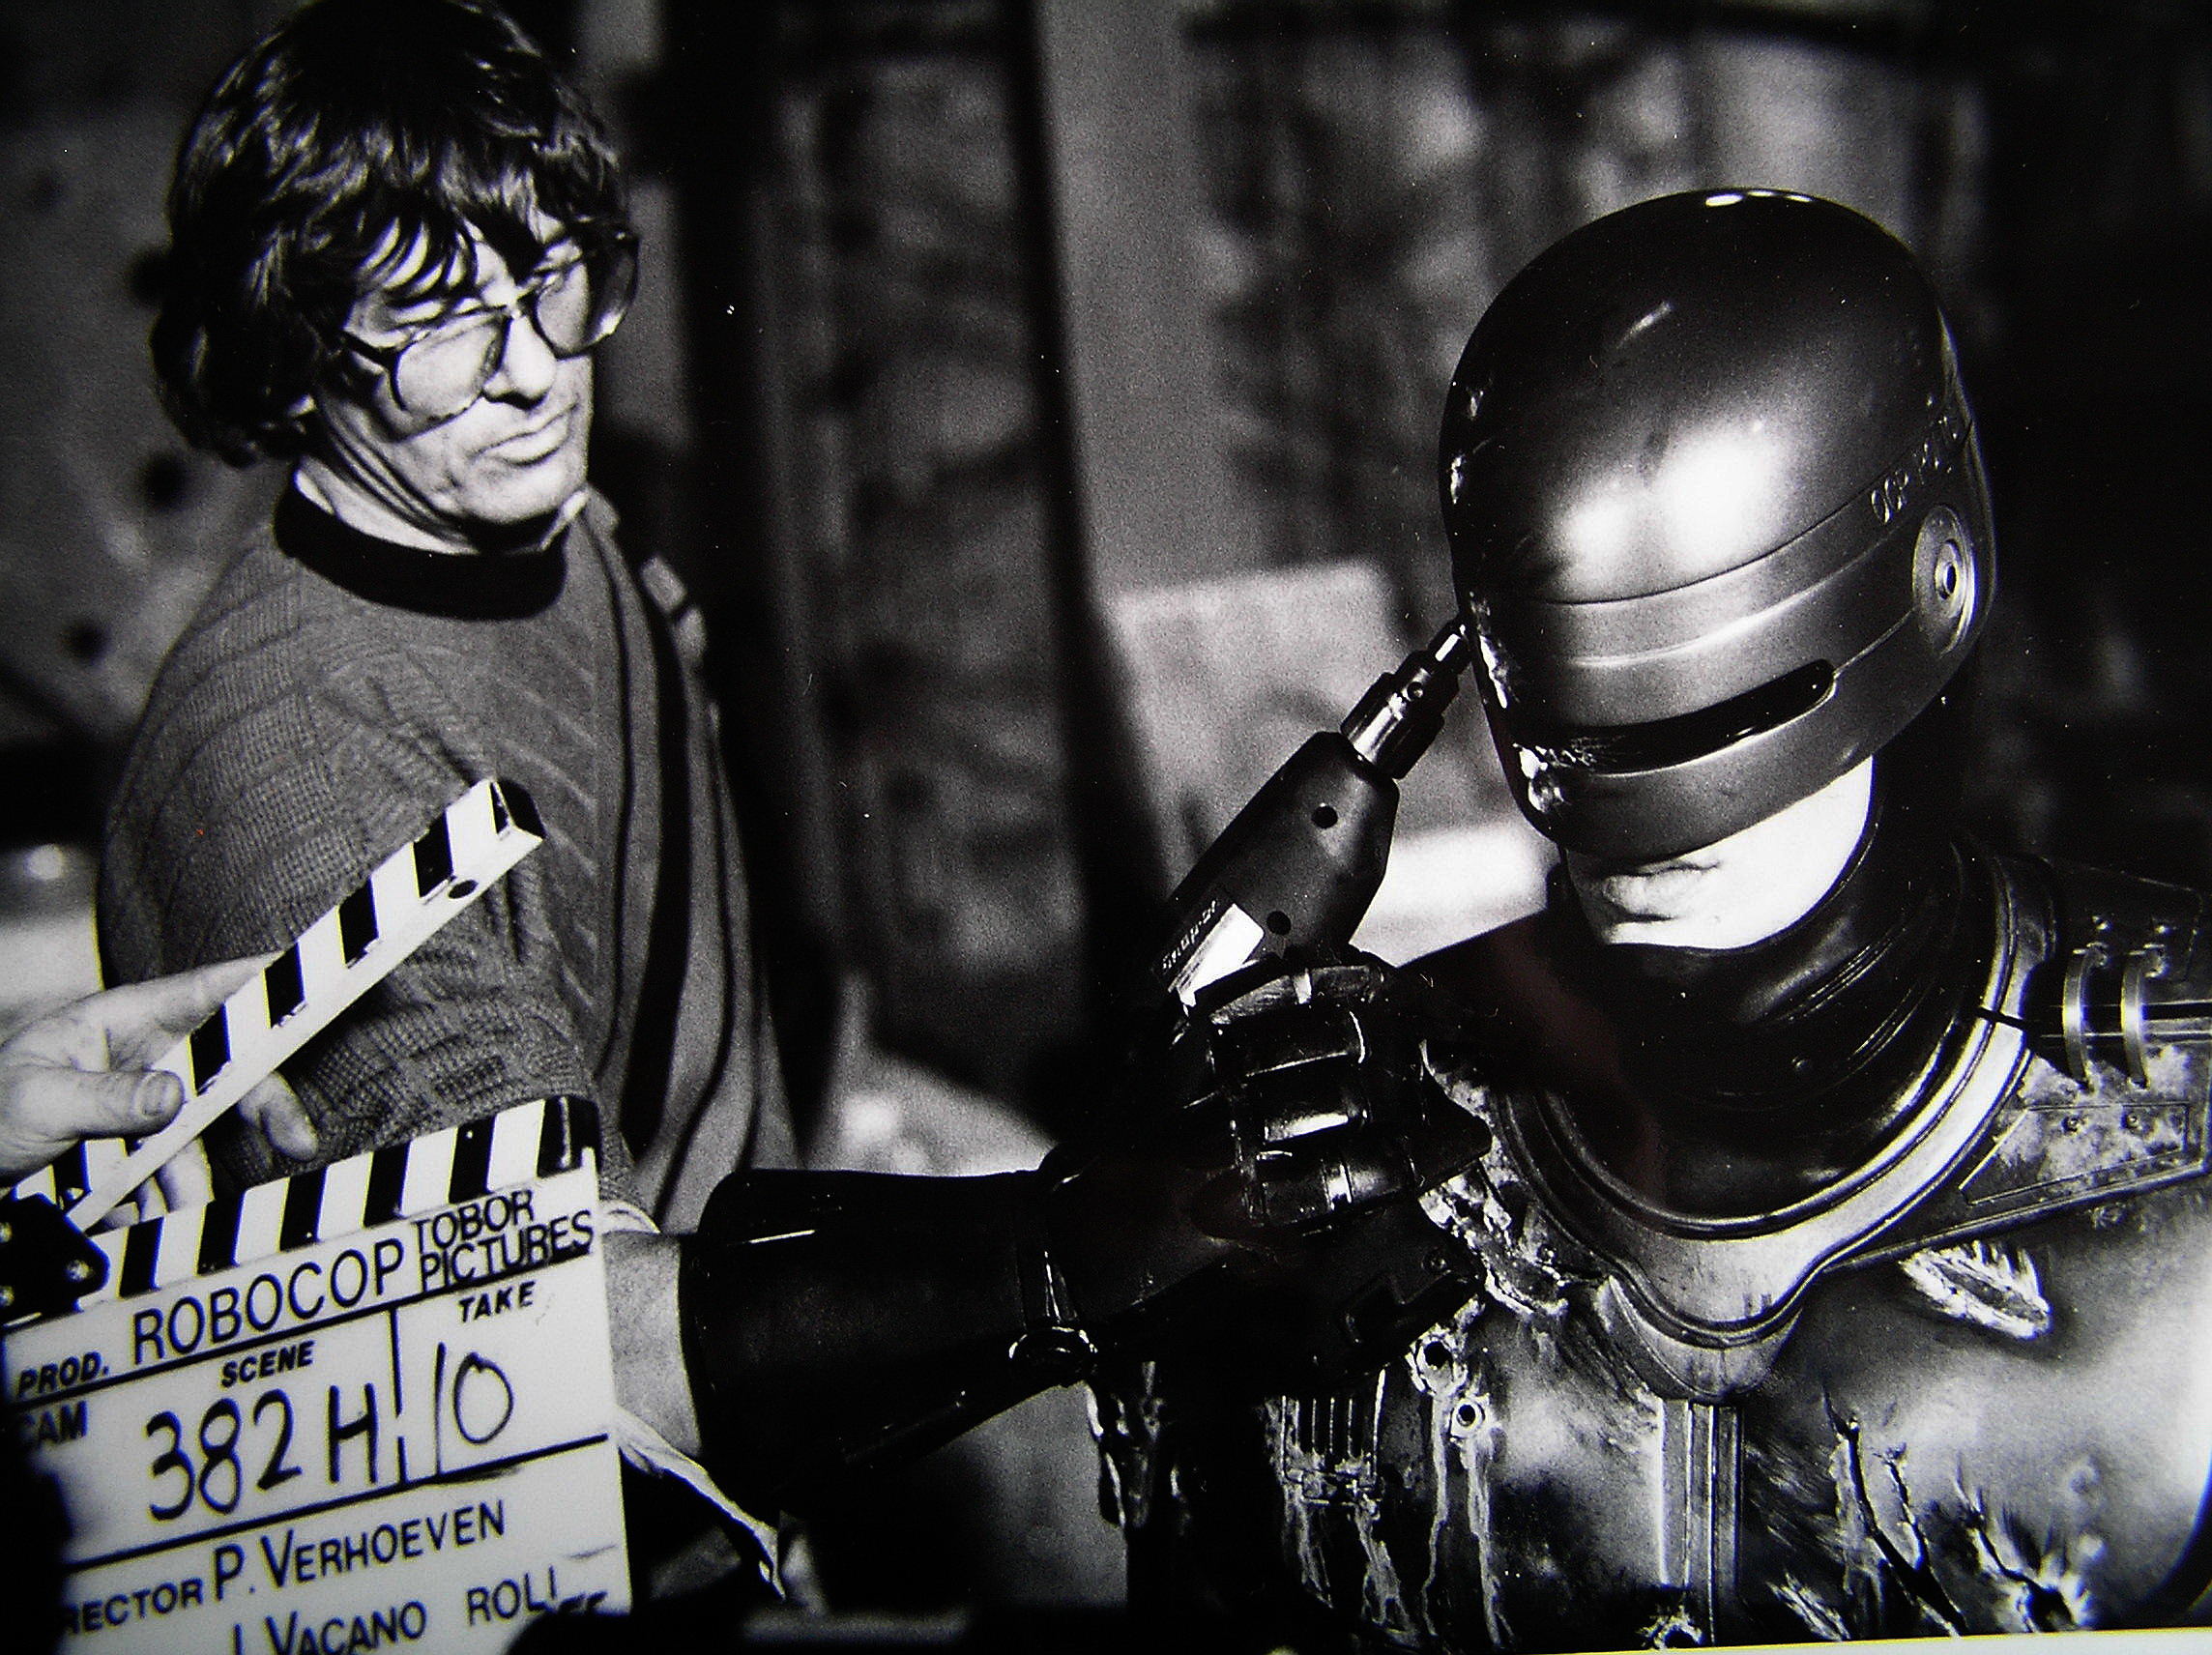 photo tournage coulisse cinema Robocop 55 Photos sur des tournages de films #2